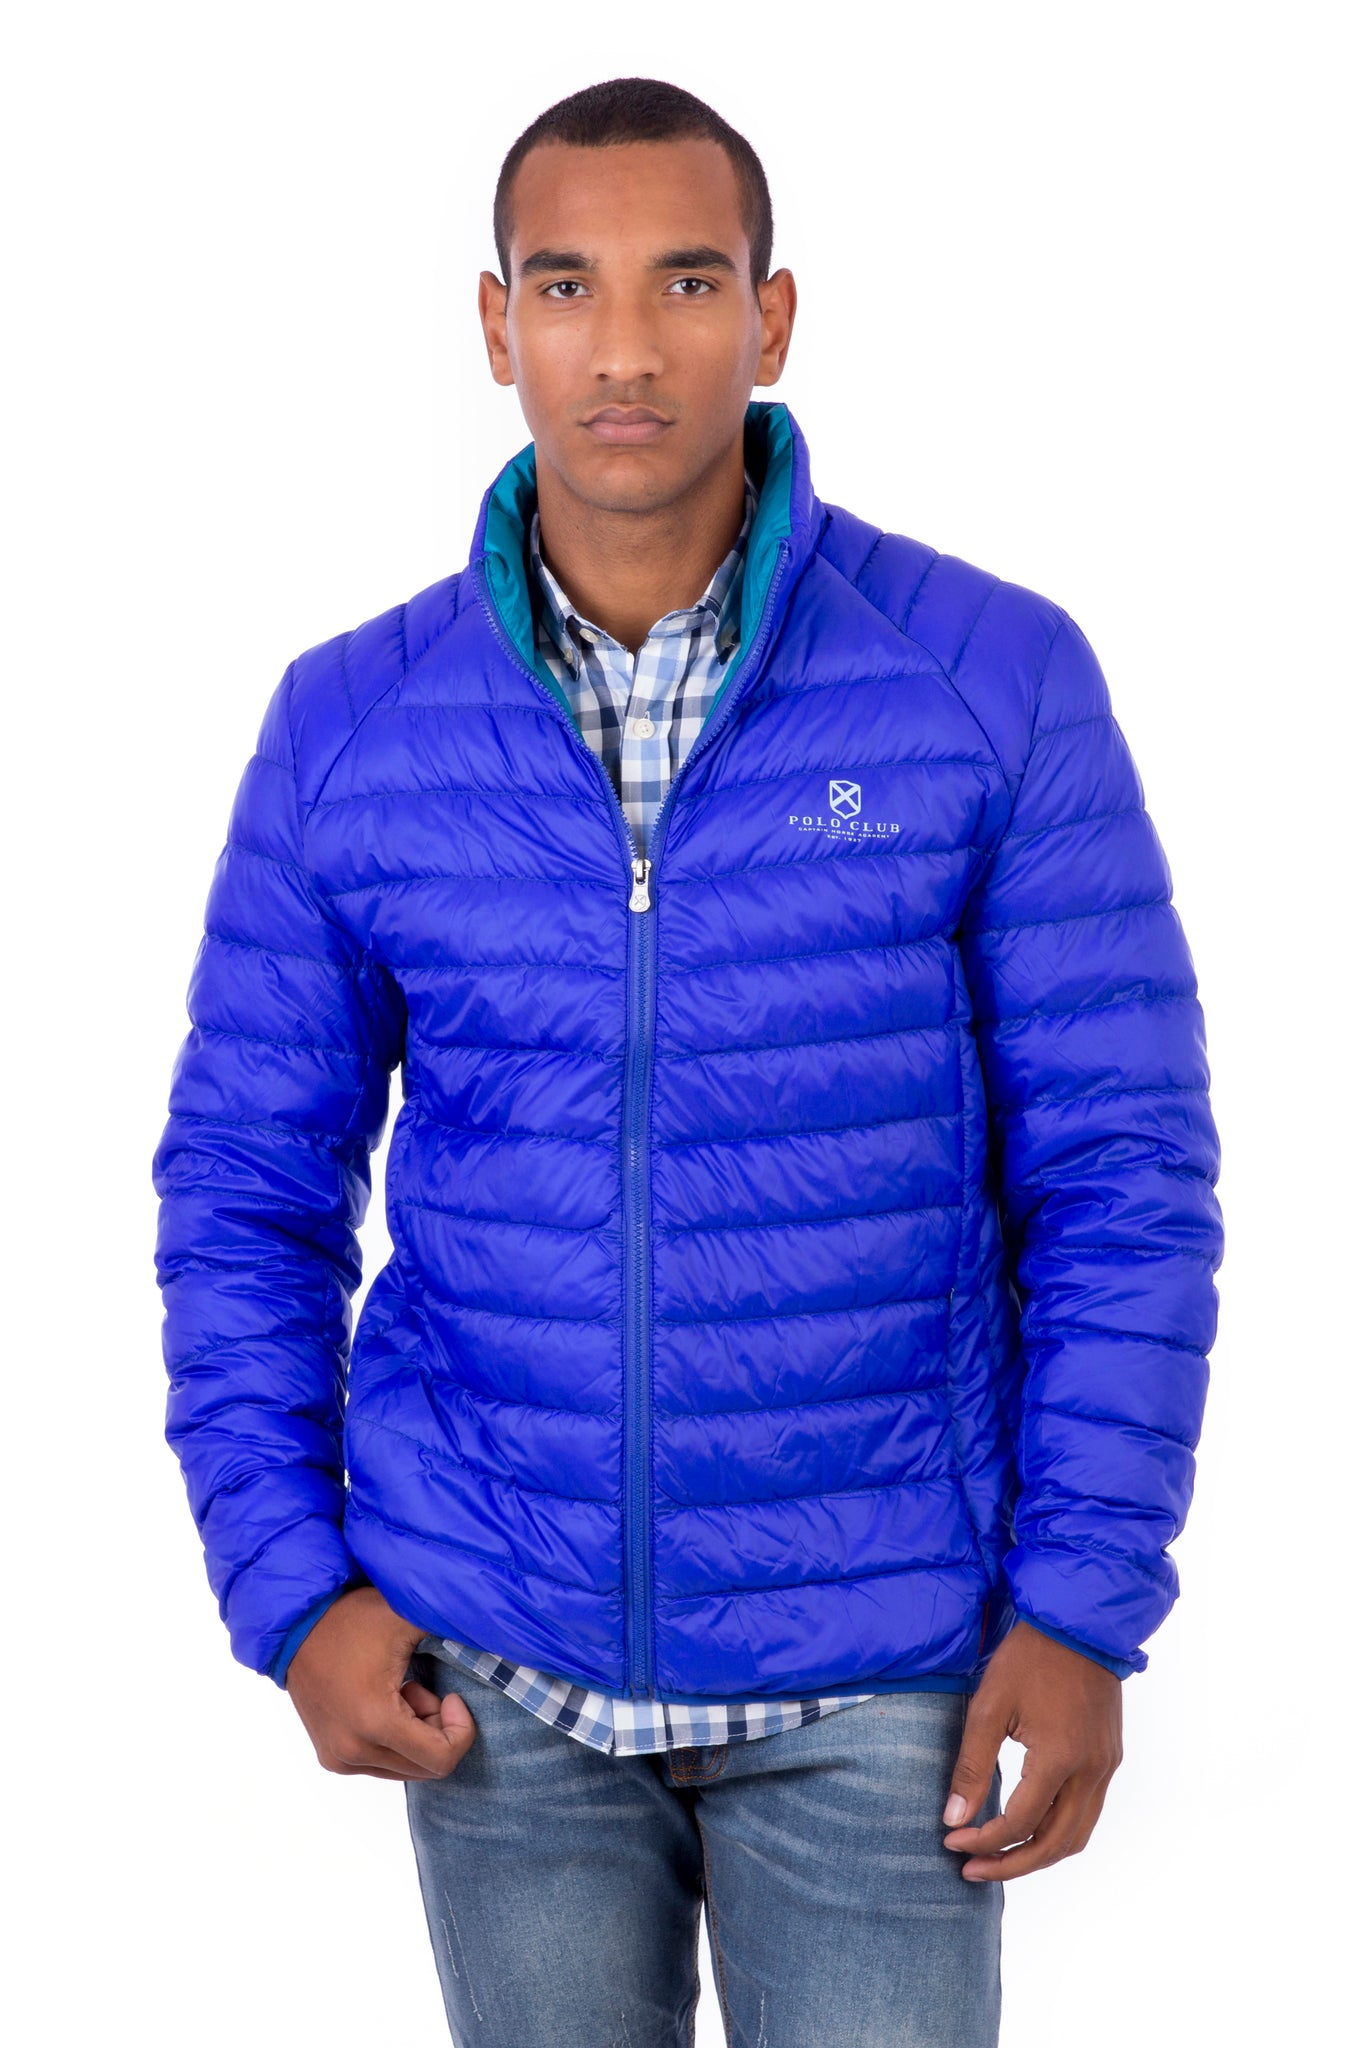 Chaqueta ULTRALIGHT azul